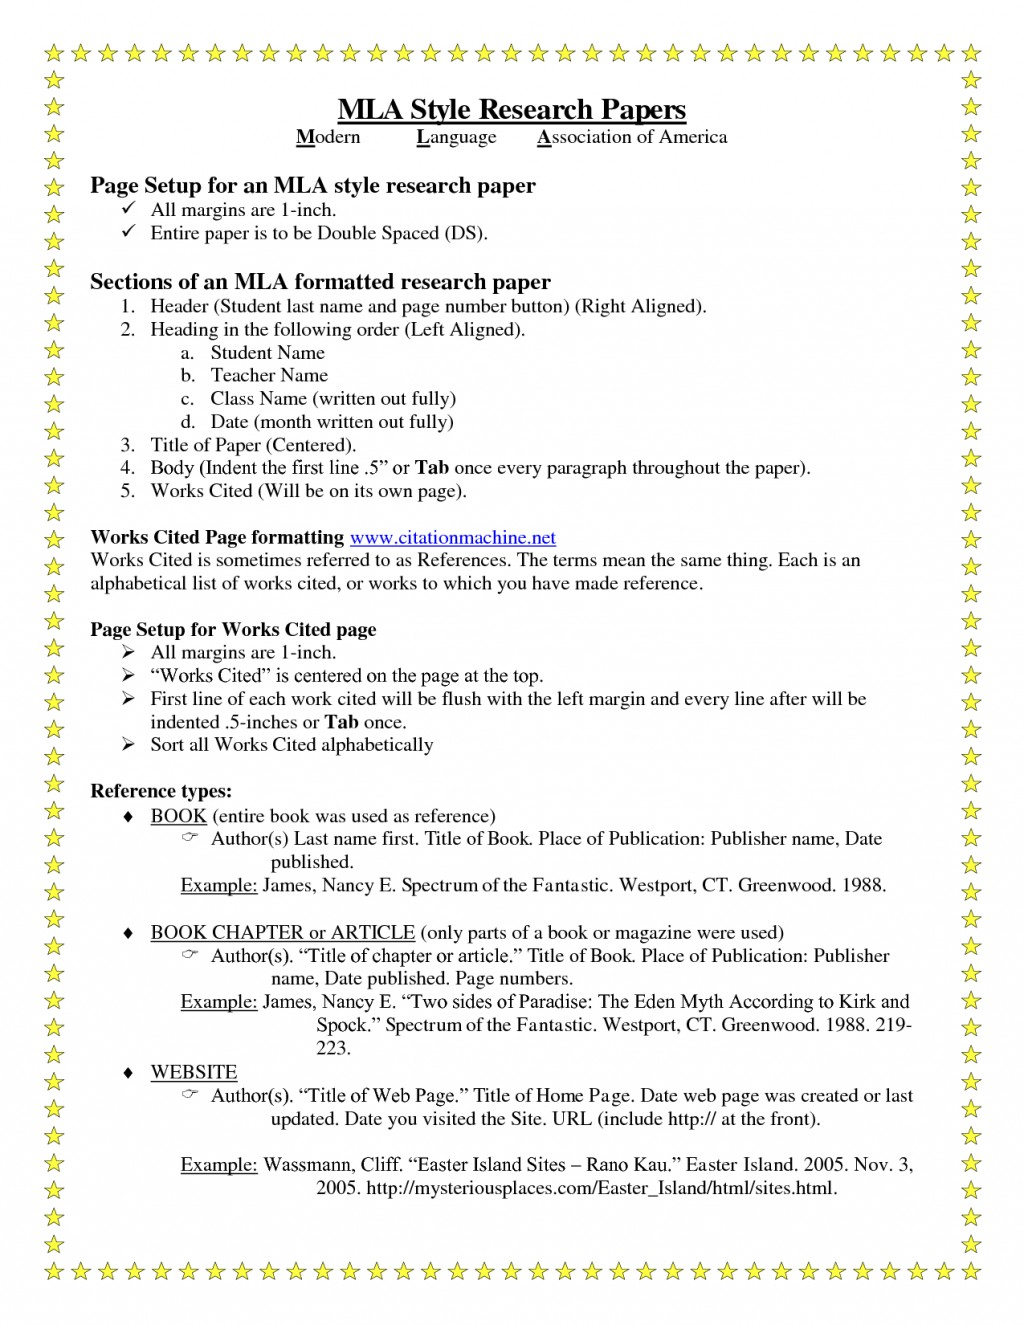 006 Research Paper Order Of Headings Wonderful A Making Mla Reviews Large